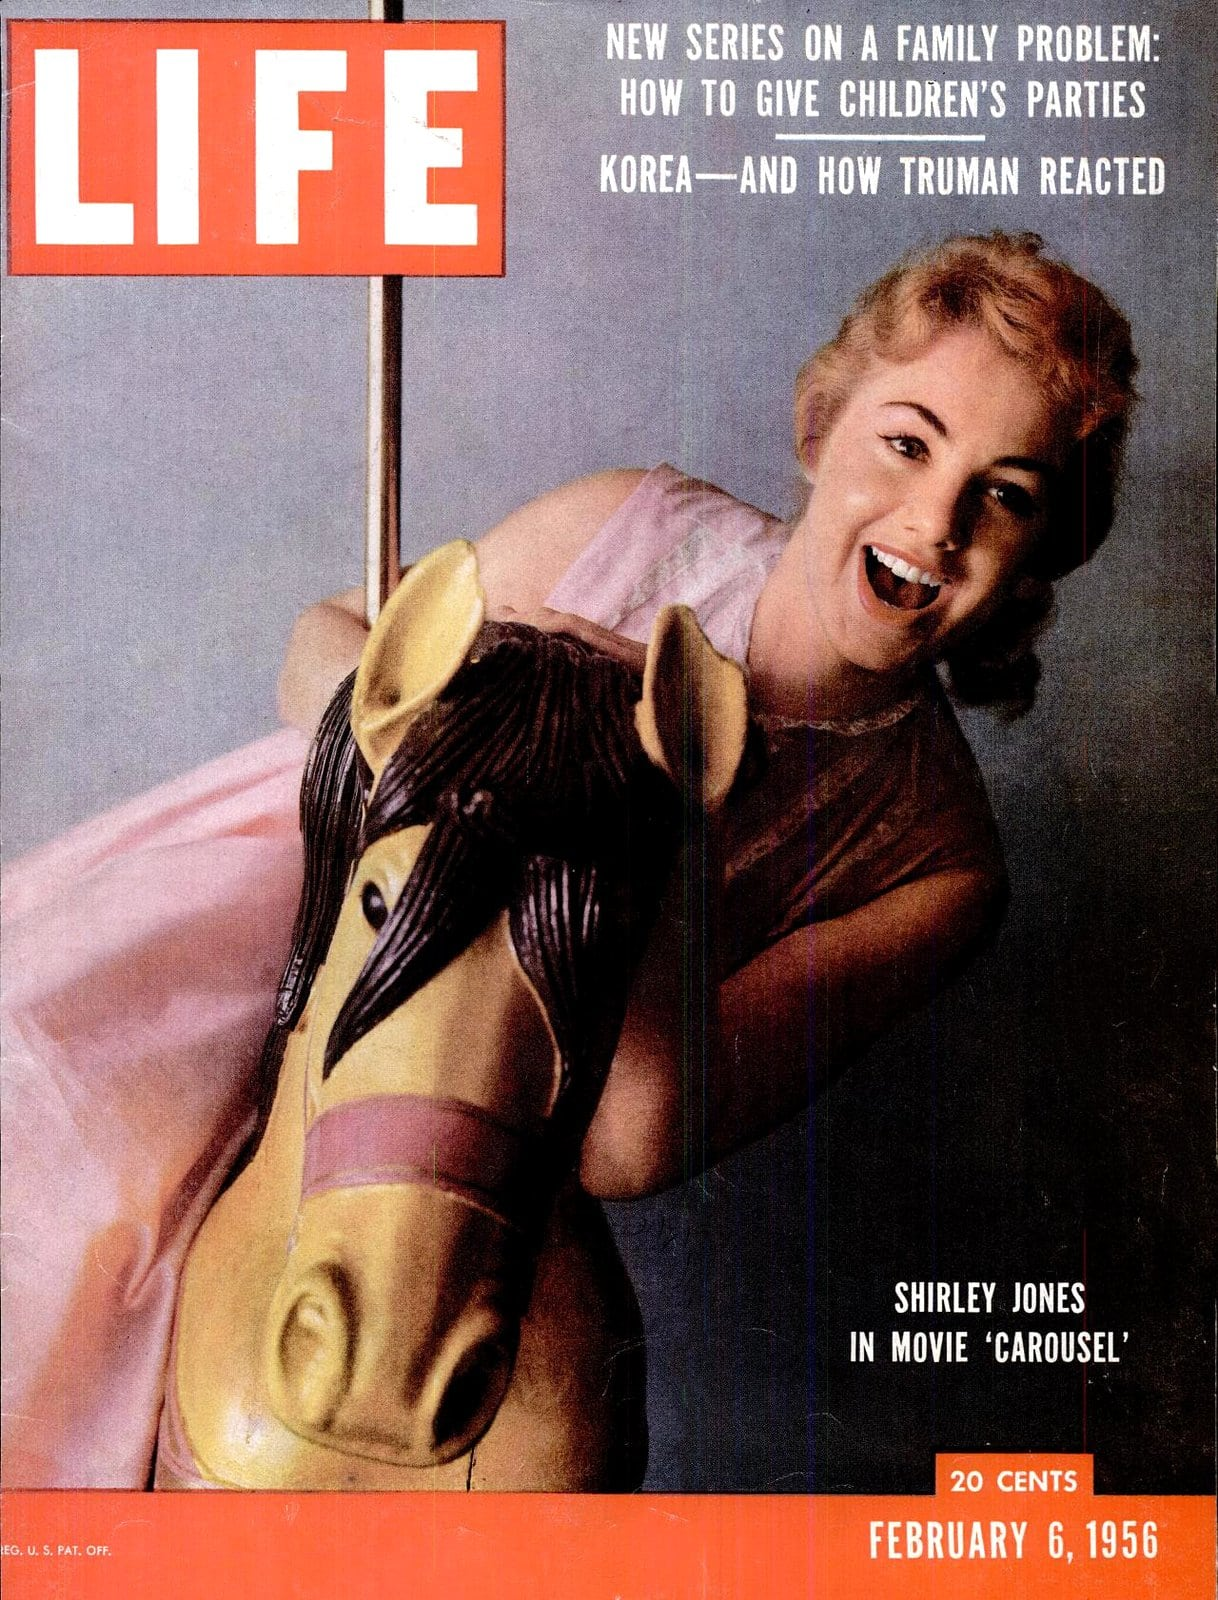 Shirley Jones in the movie Carousel on the cover of Life magazine (1956)